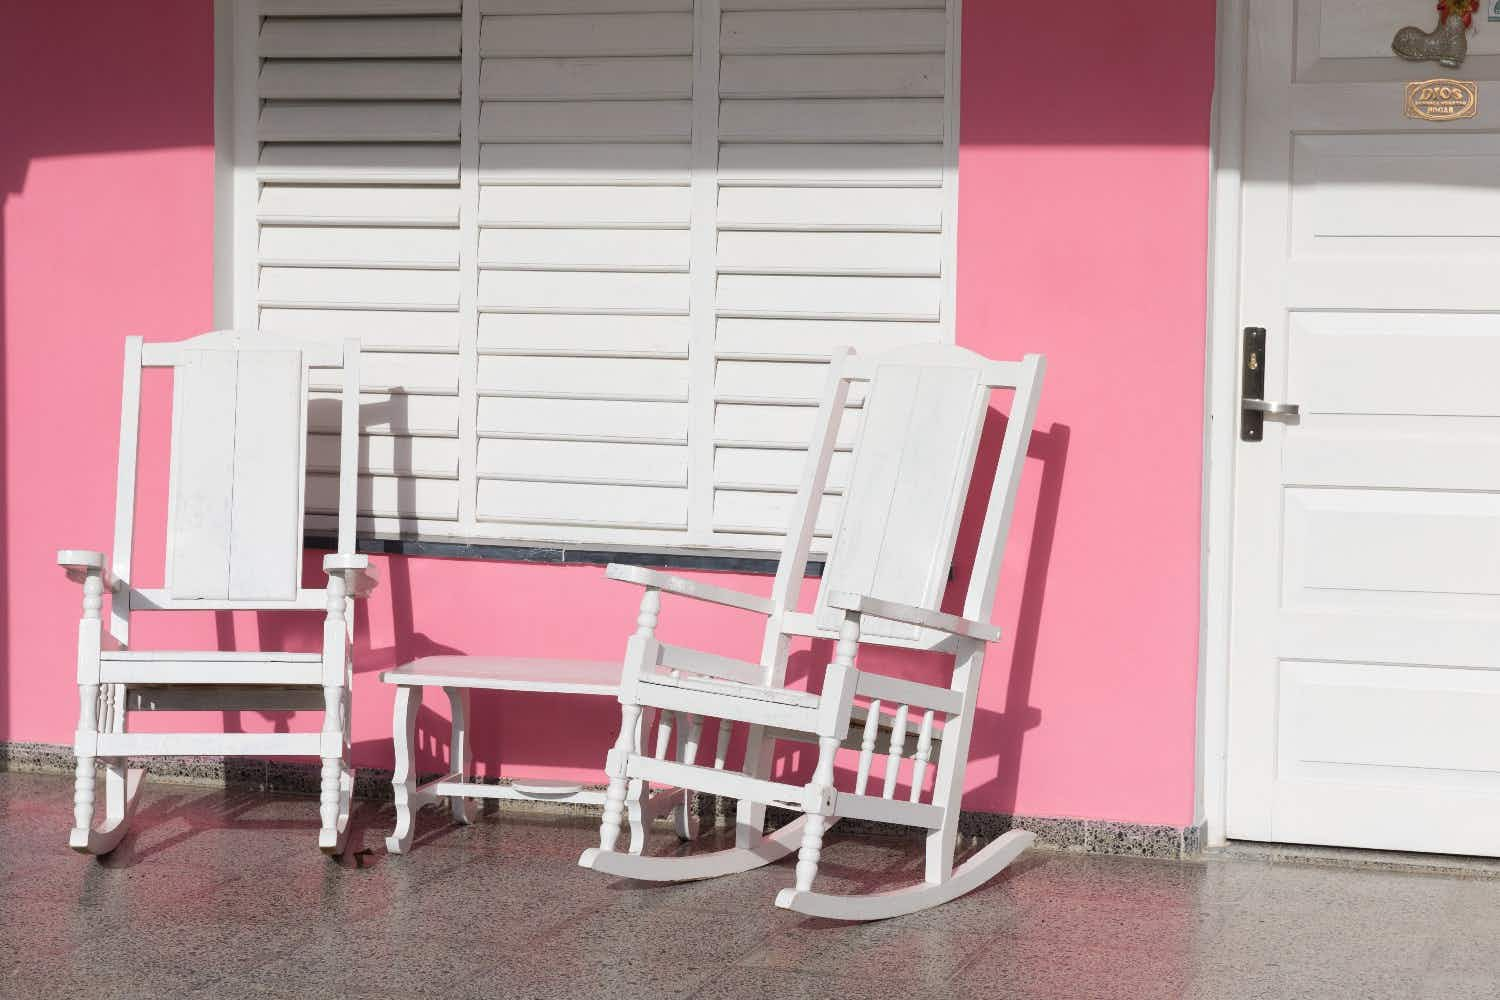 Discover the reason Spanish people love to keep their shutters closed all day